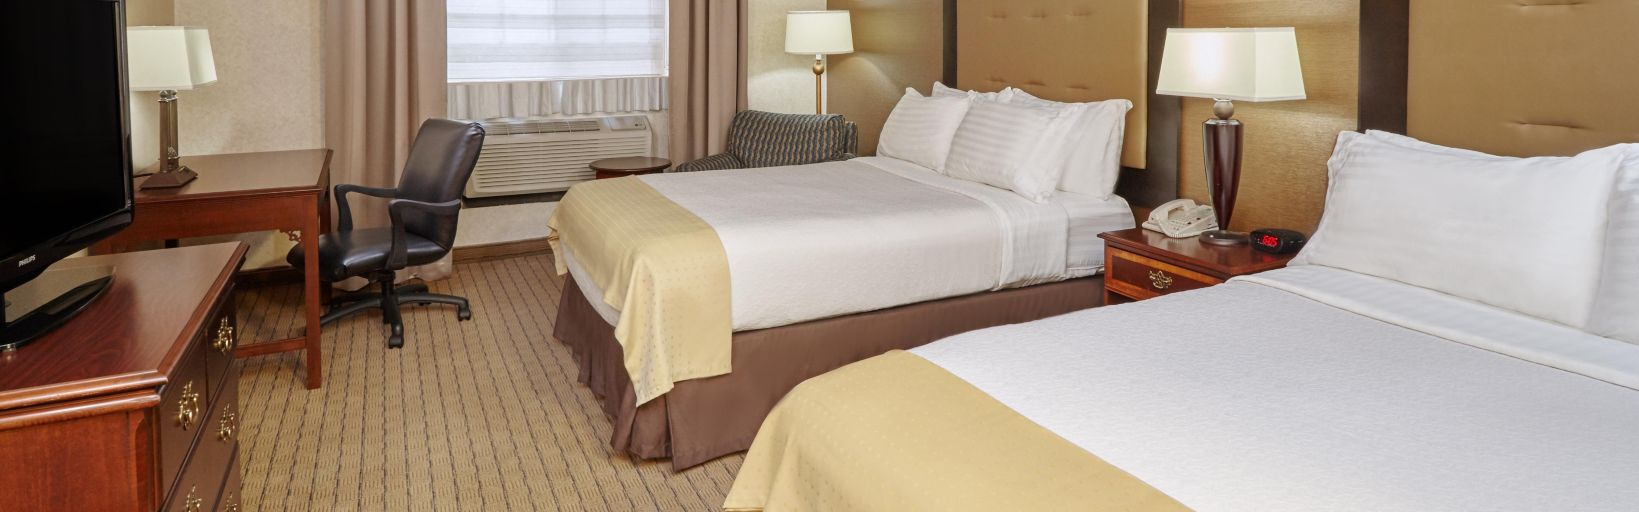 2 bedroom suite chicago illinois hotel double bed guest room suite holiday inn hotel suites chicagocarol stream wheaton by ihg